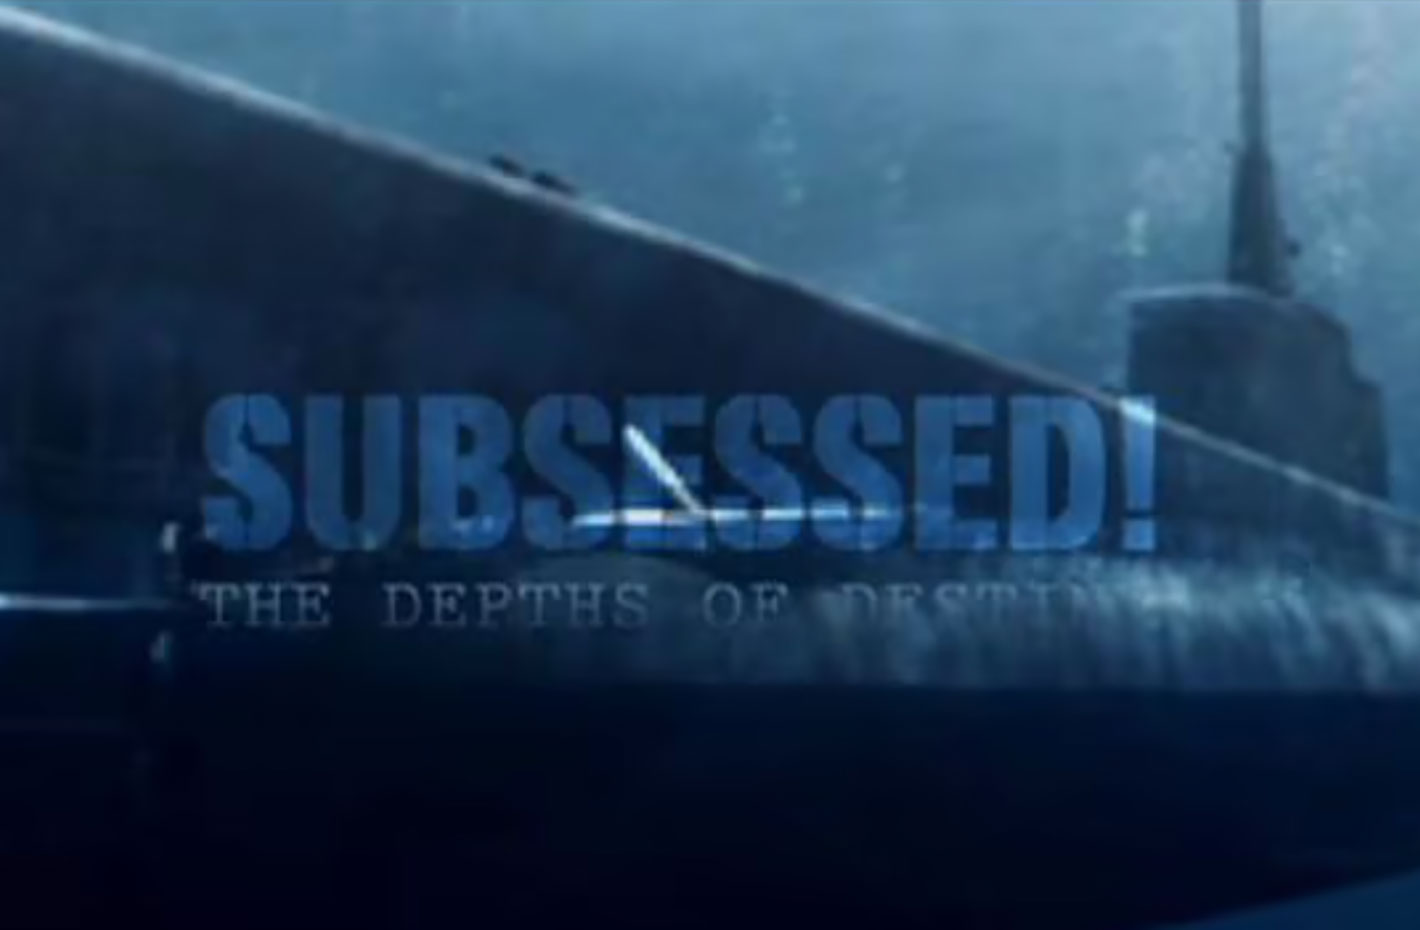 SUBSESSED! The Depths of Destiny